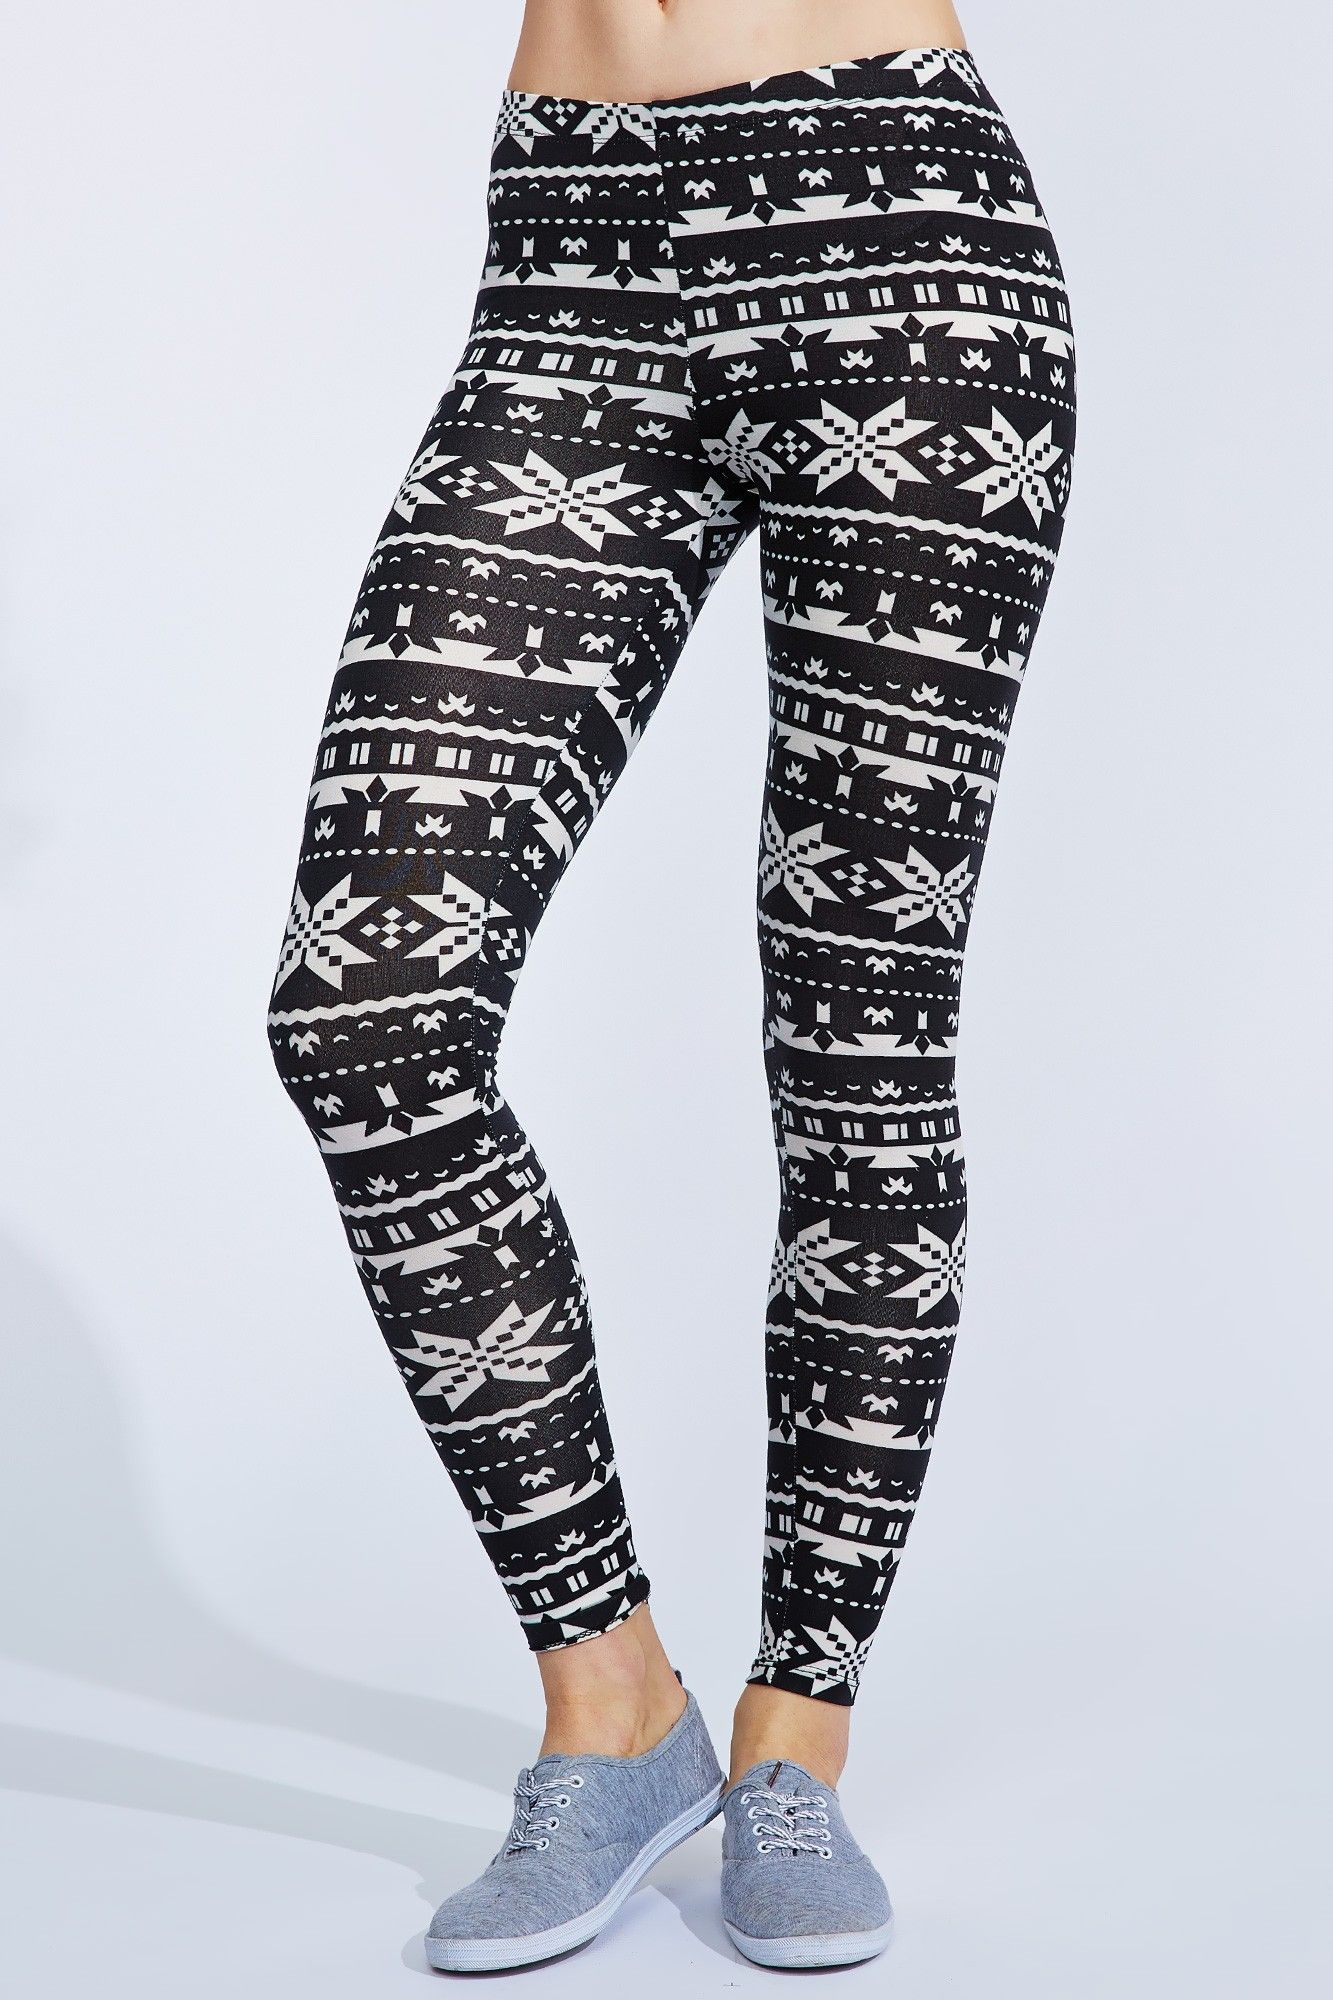 0522-44062285 Nordic Print Leggings